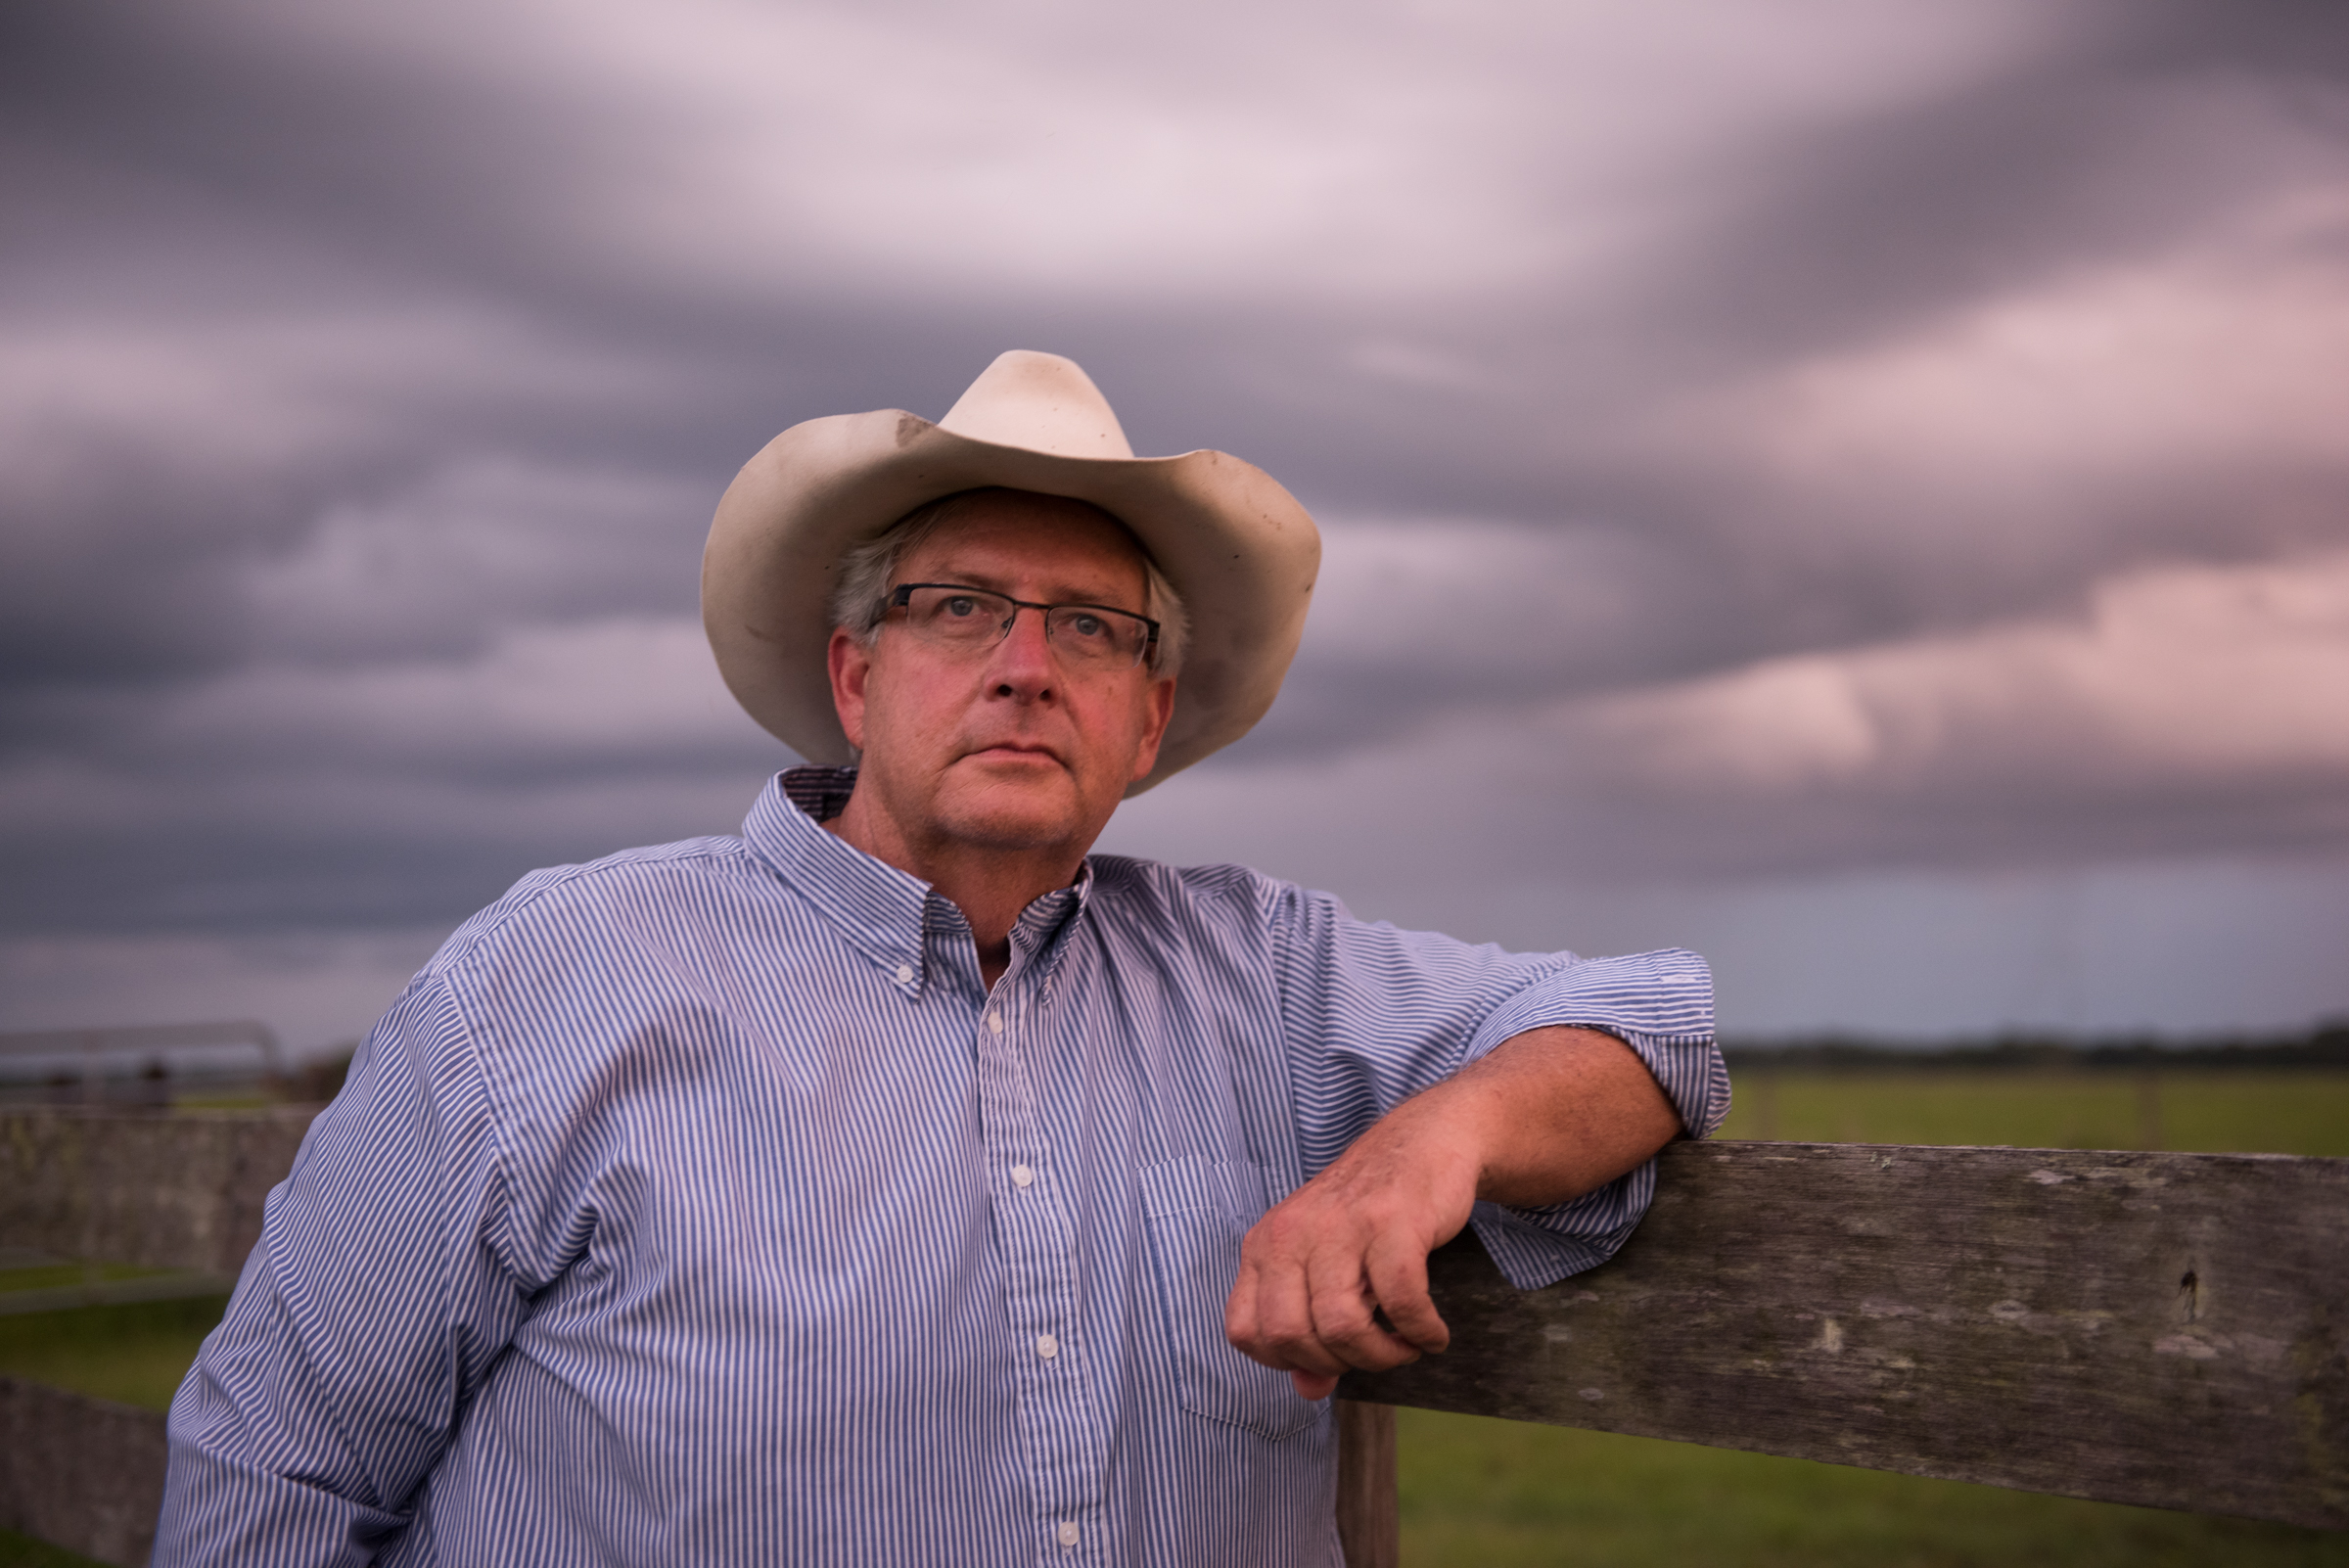 Former Florida Cattlemen's Association president Jim Strickland at his Blackbeard's Ranch east of Sarasota. Suburban development and phosphate mining threaten the ranch, which is listed as a priority for protection by a conservation easement by federal and state programs. Blackbeard's Ranch helps protect the headwaters of the Myakka River.